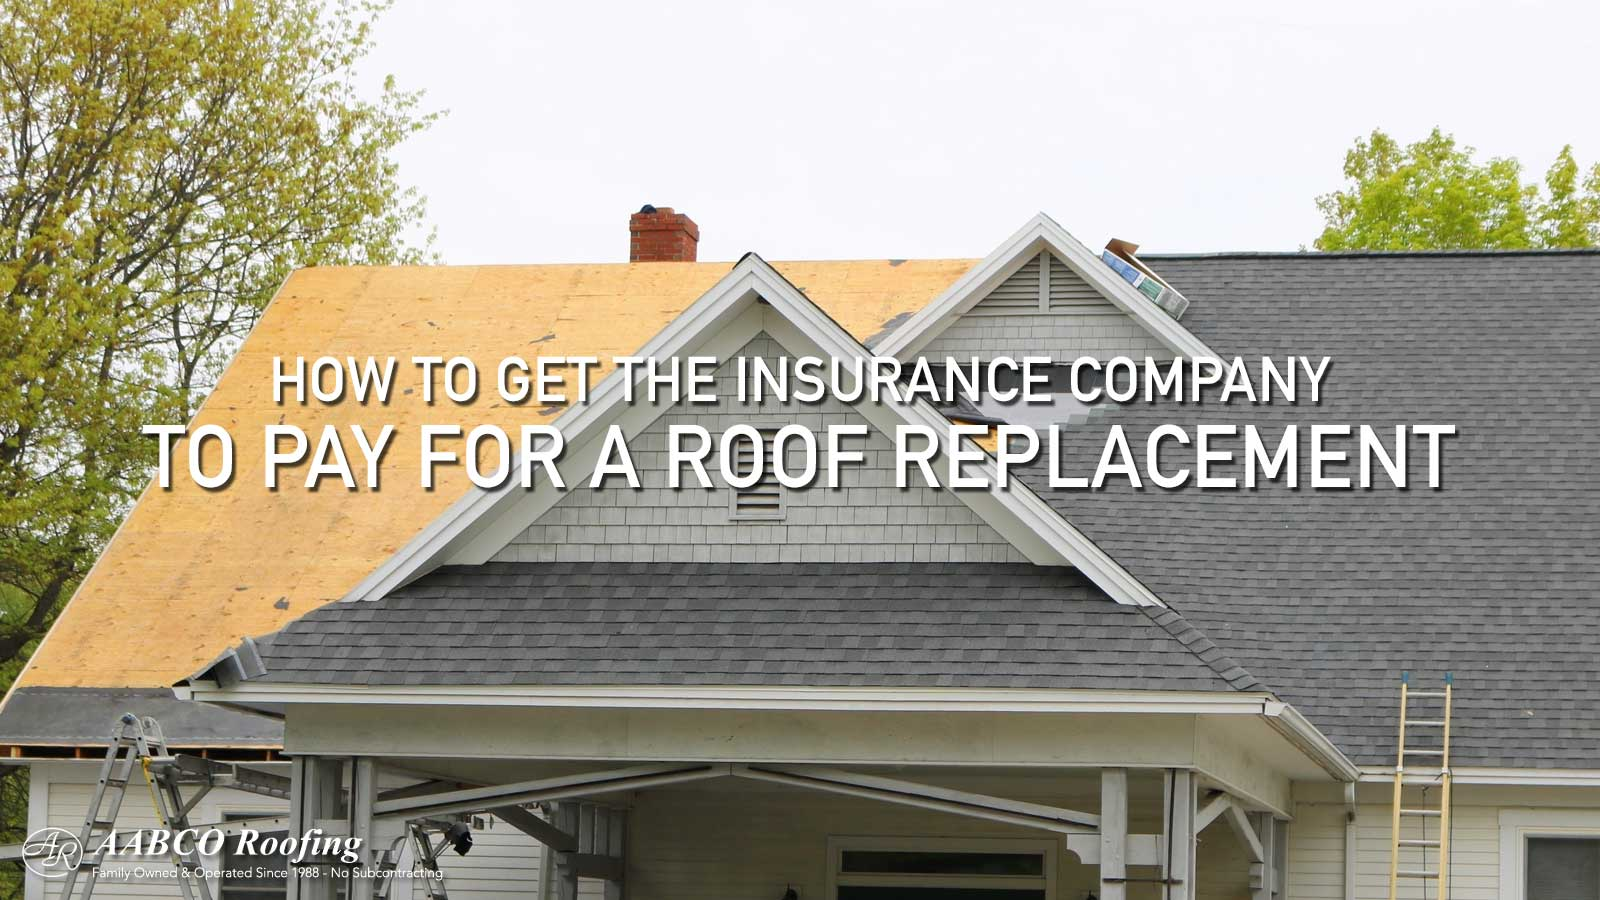 How to get roof replacement insurance